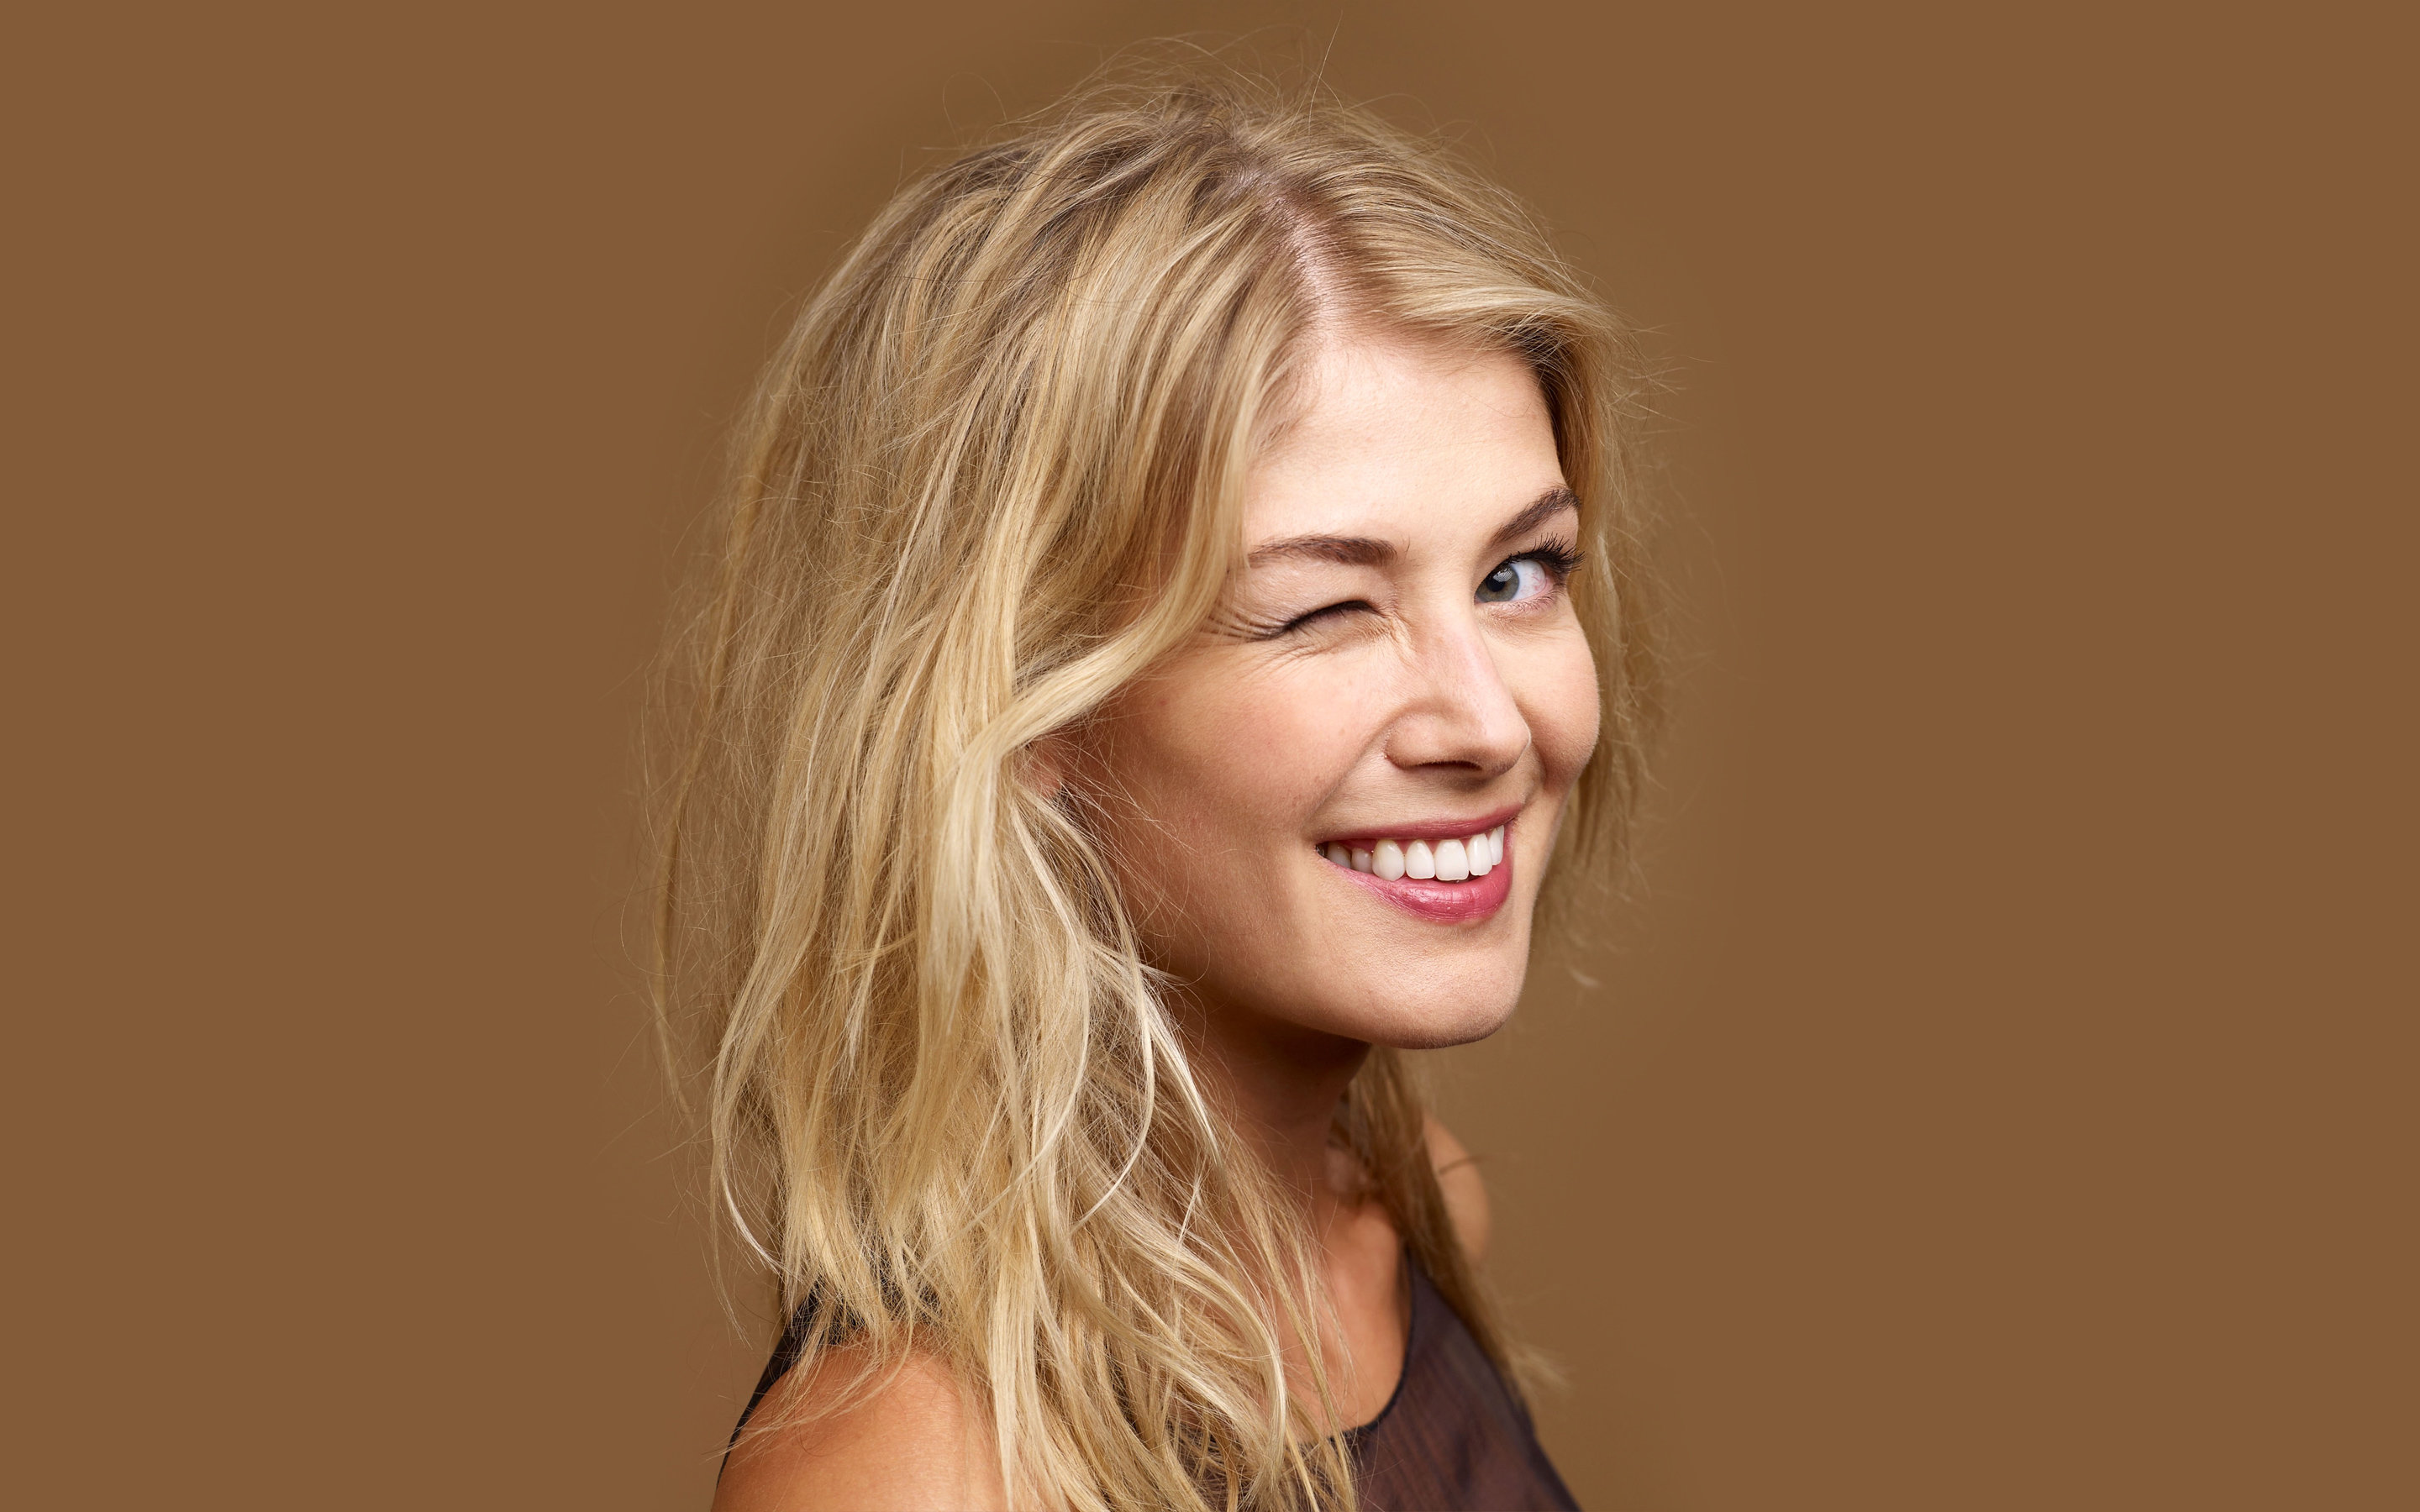 Awesome Rosamund Pike free background ID:378964 for hd 2880x1800 computer